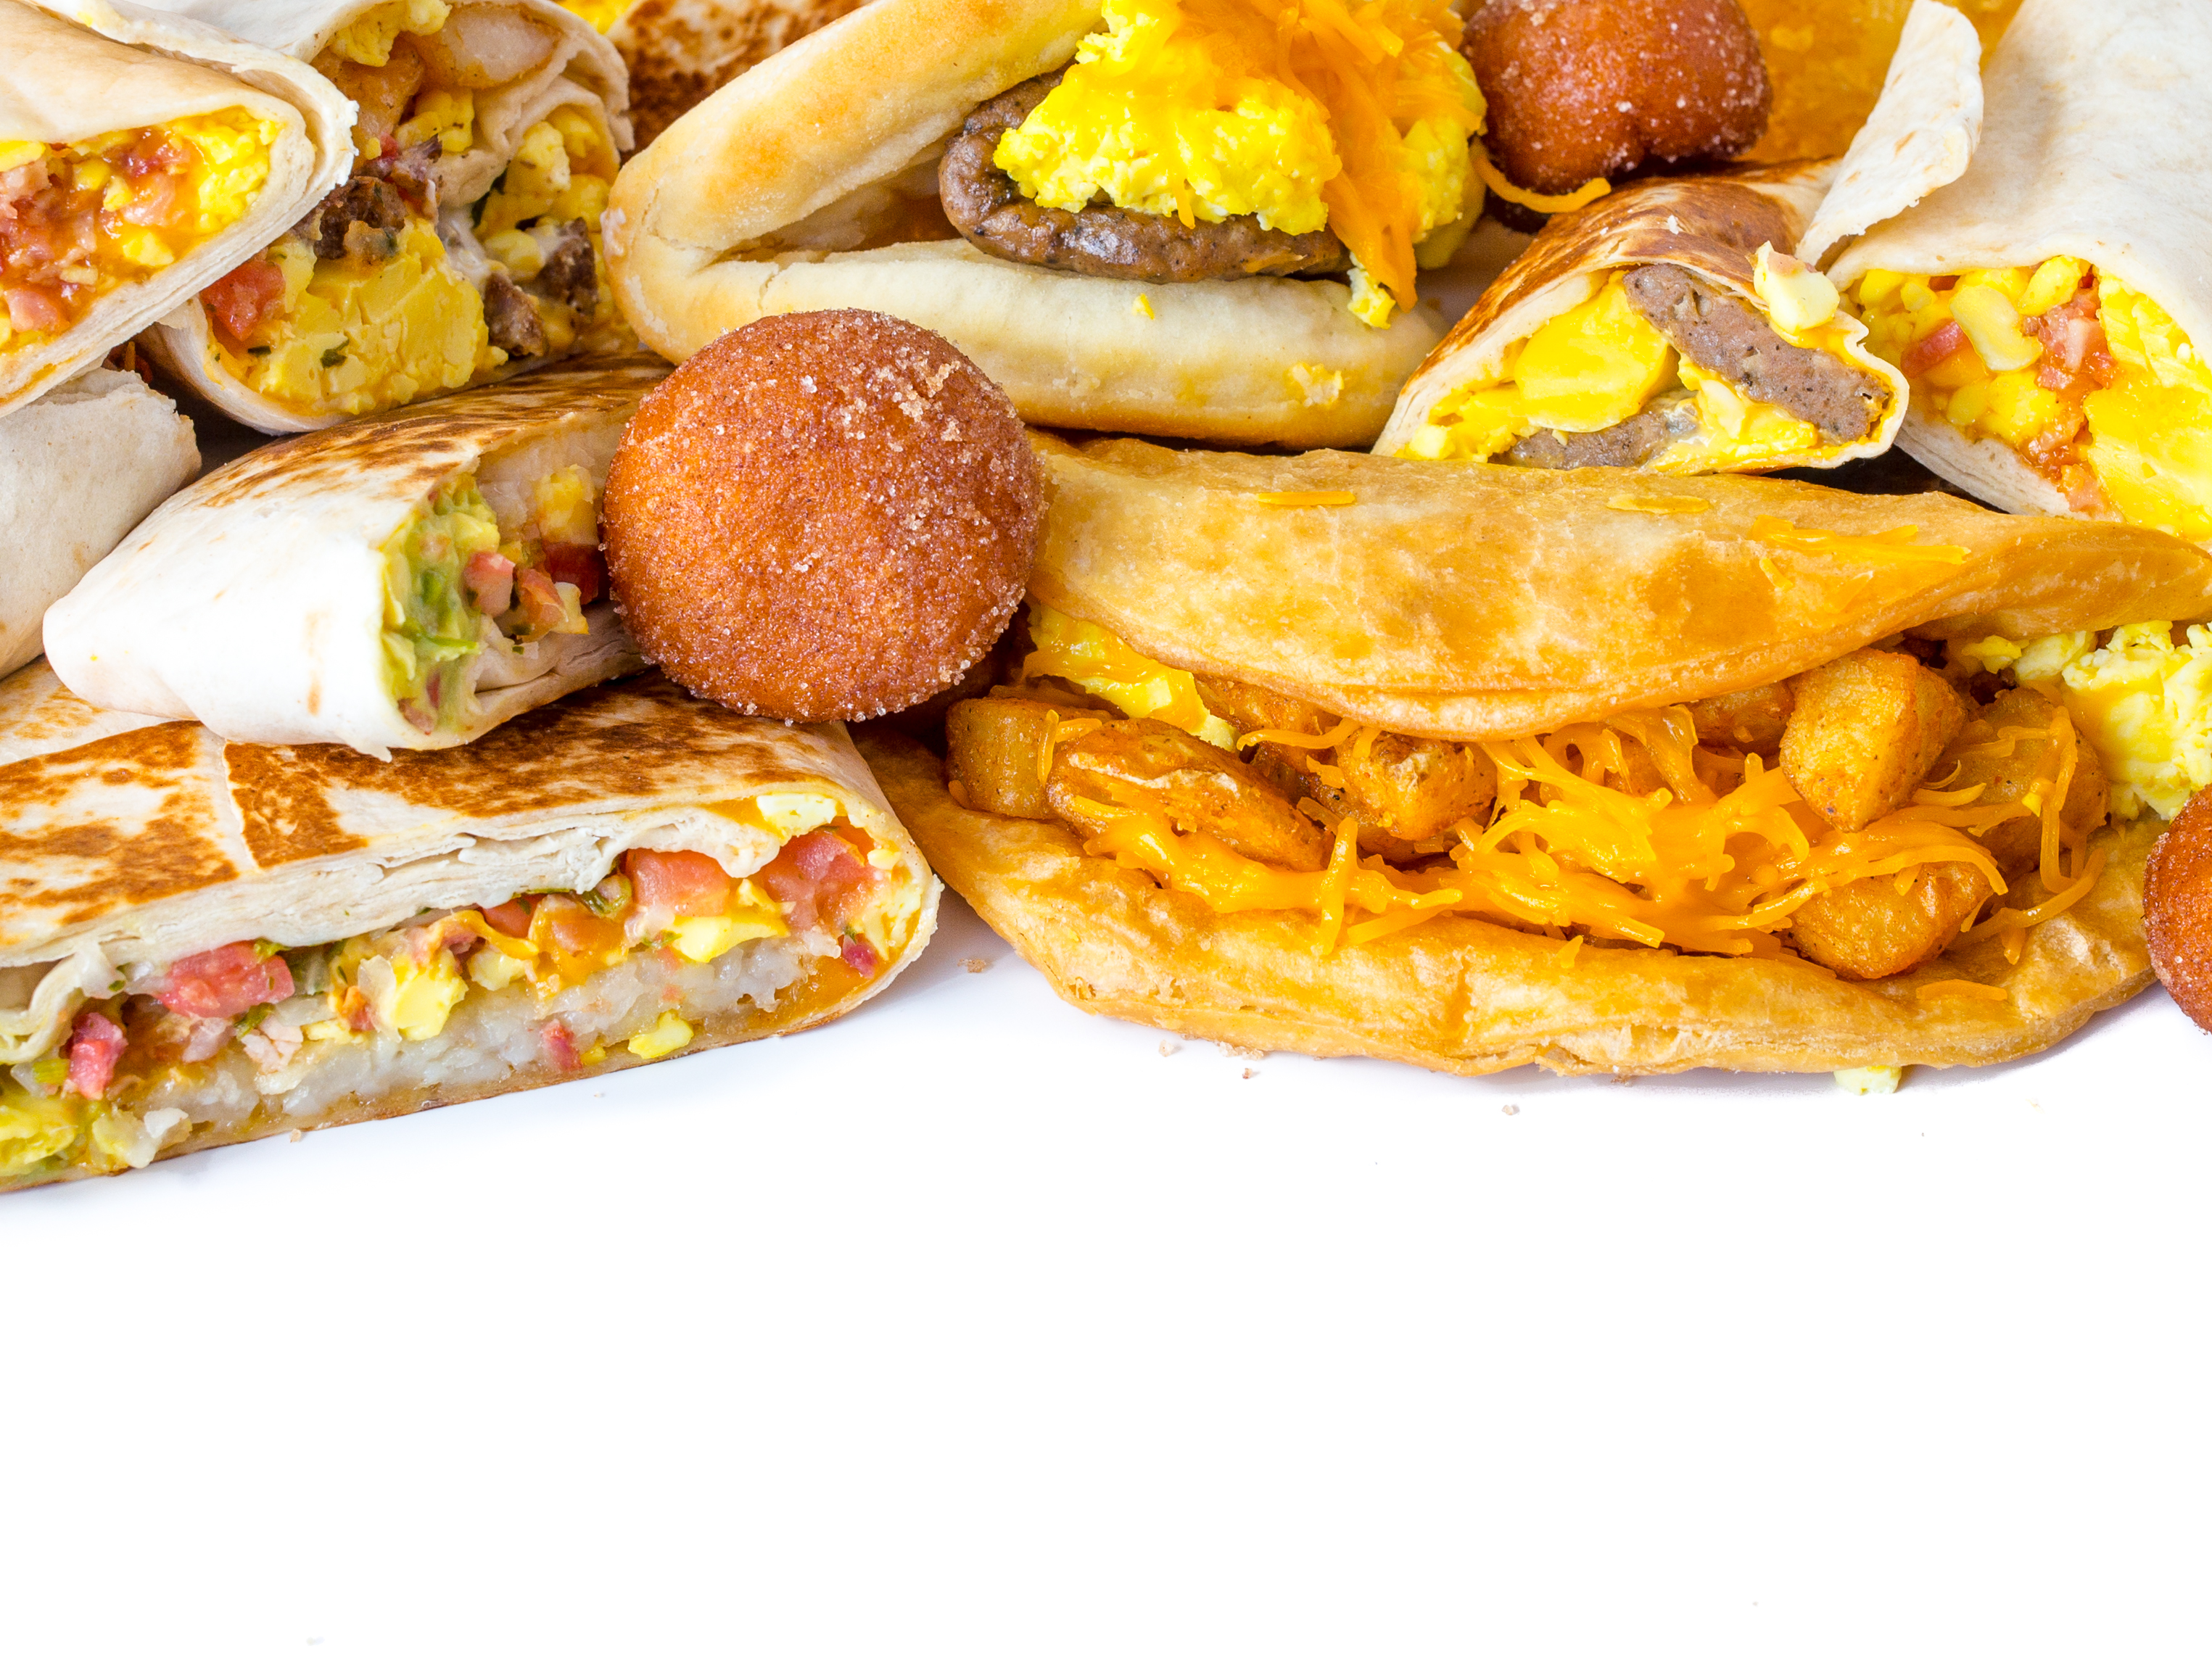 Pile of unwrapped Taco Bell breakfast food.